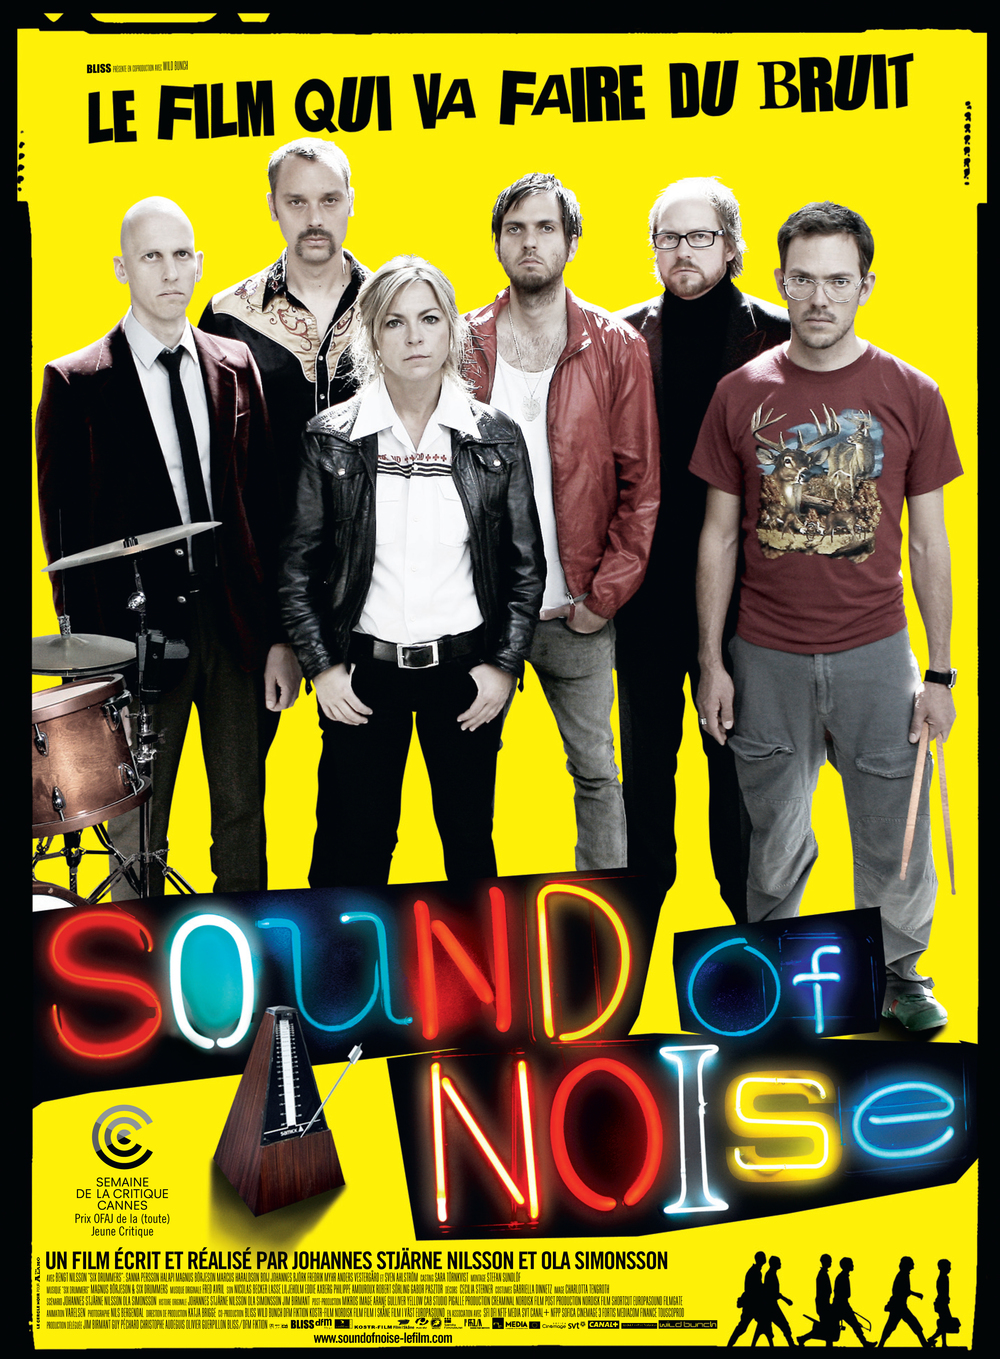 SOUND OF NOISE France.jpg